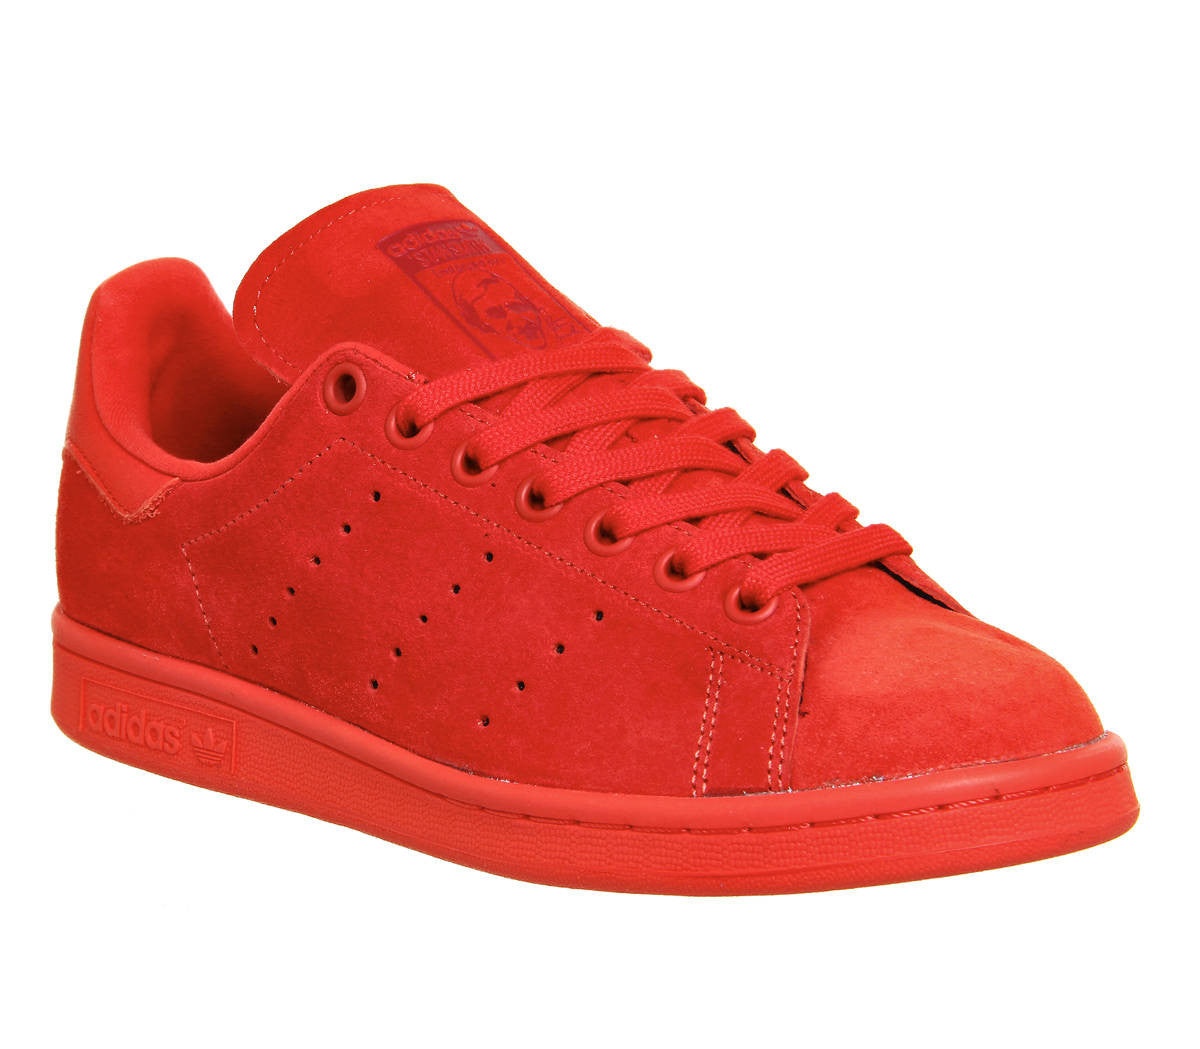 Adidas Stan Smith Mono Red Suede 10 – SHCCK 71b1b6e25dc5